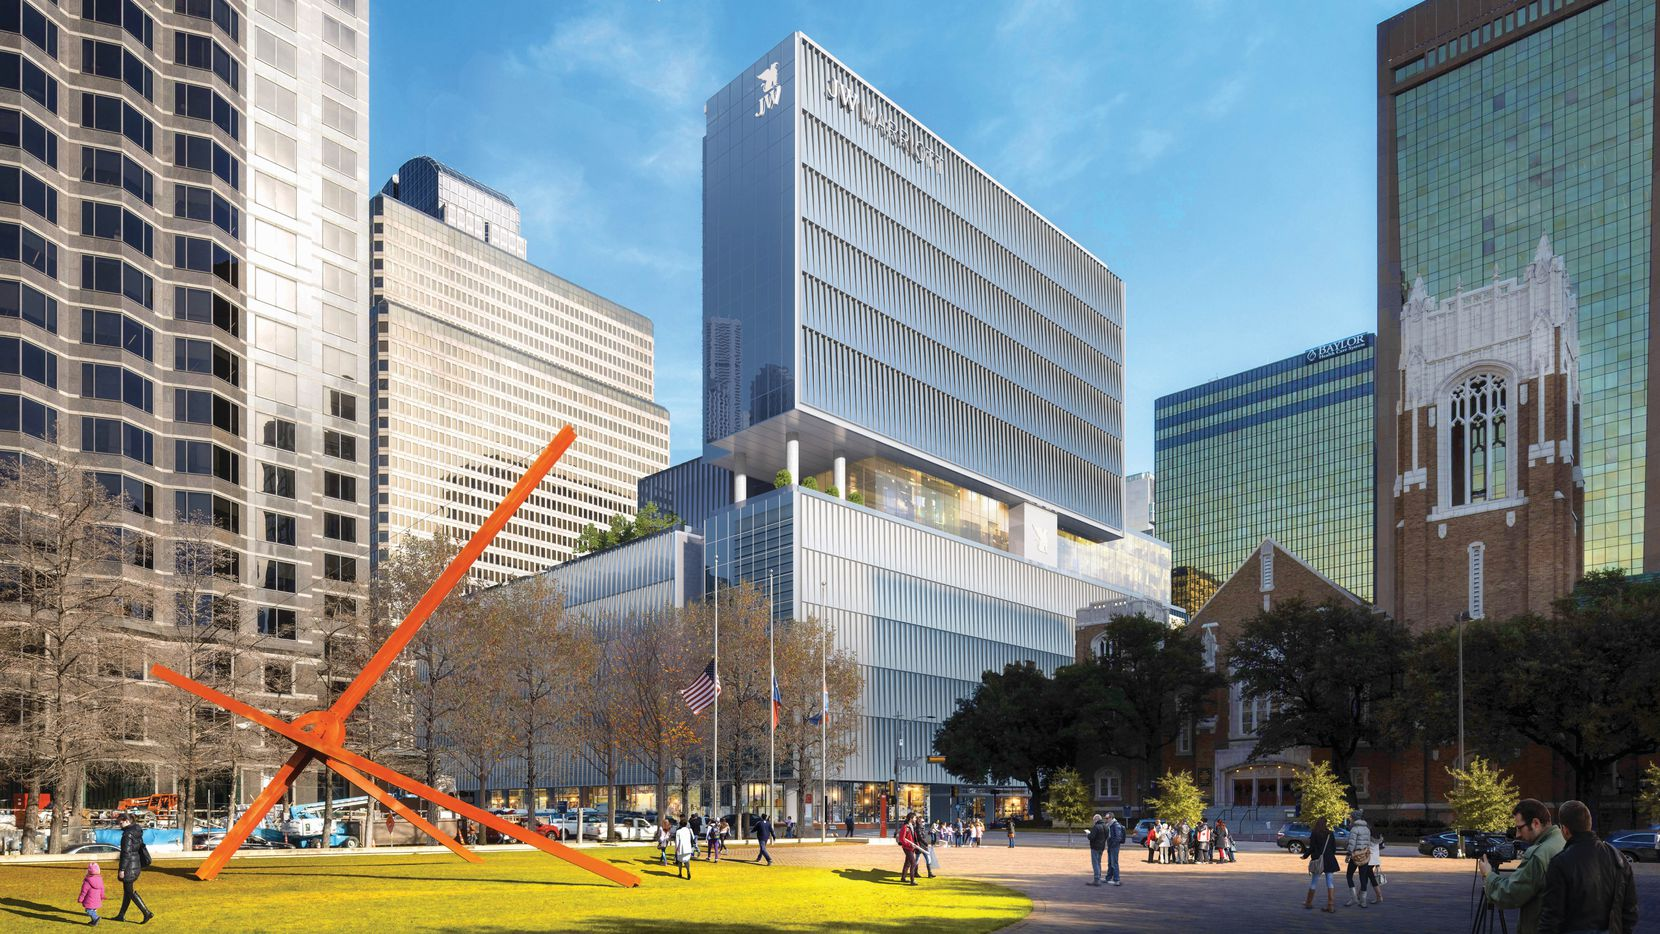 The Moon Group's new hotel will be across from the Dallas Museum of Art.